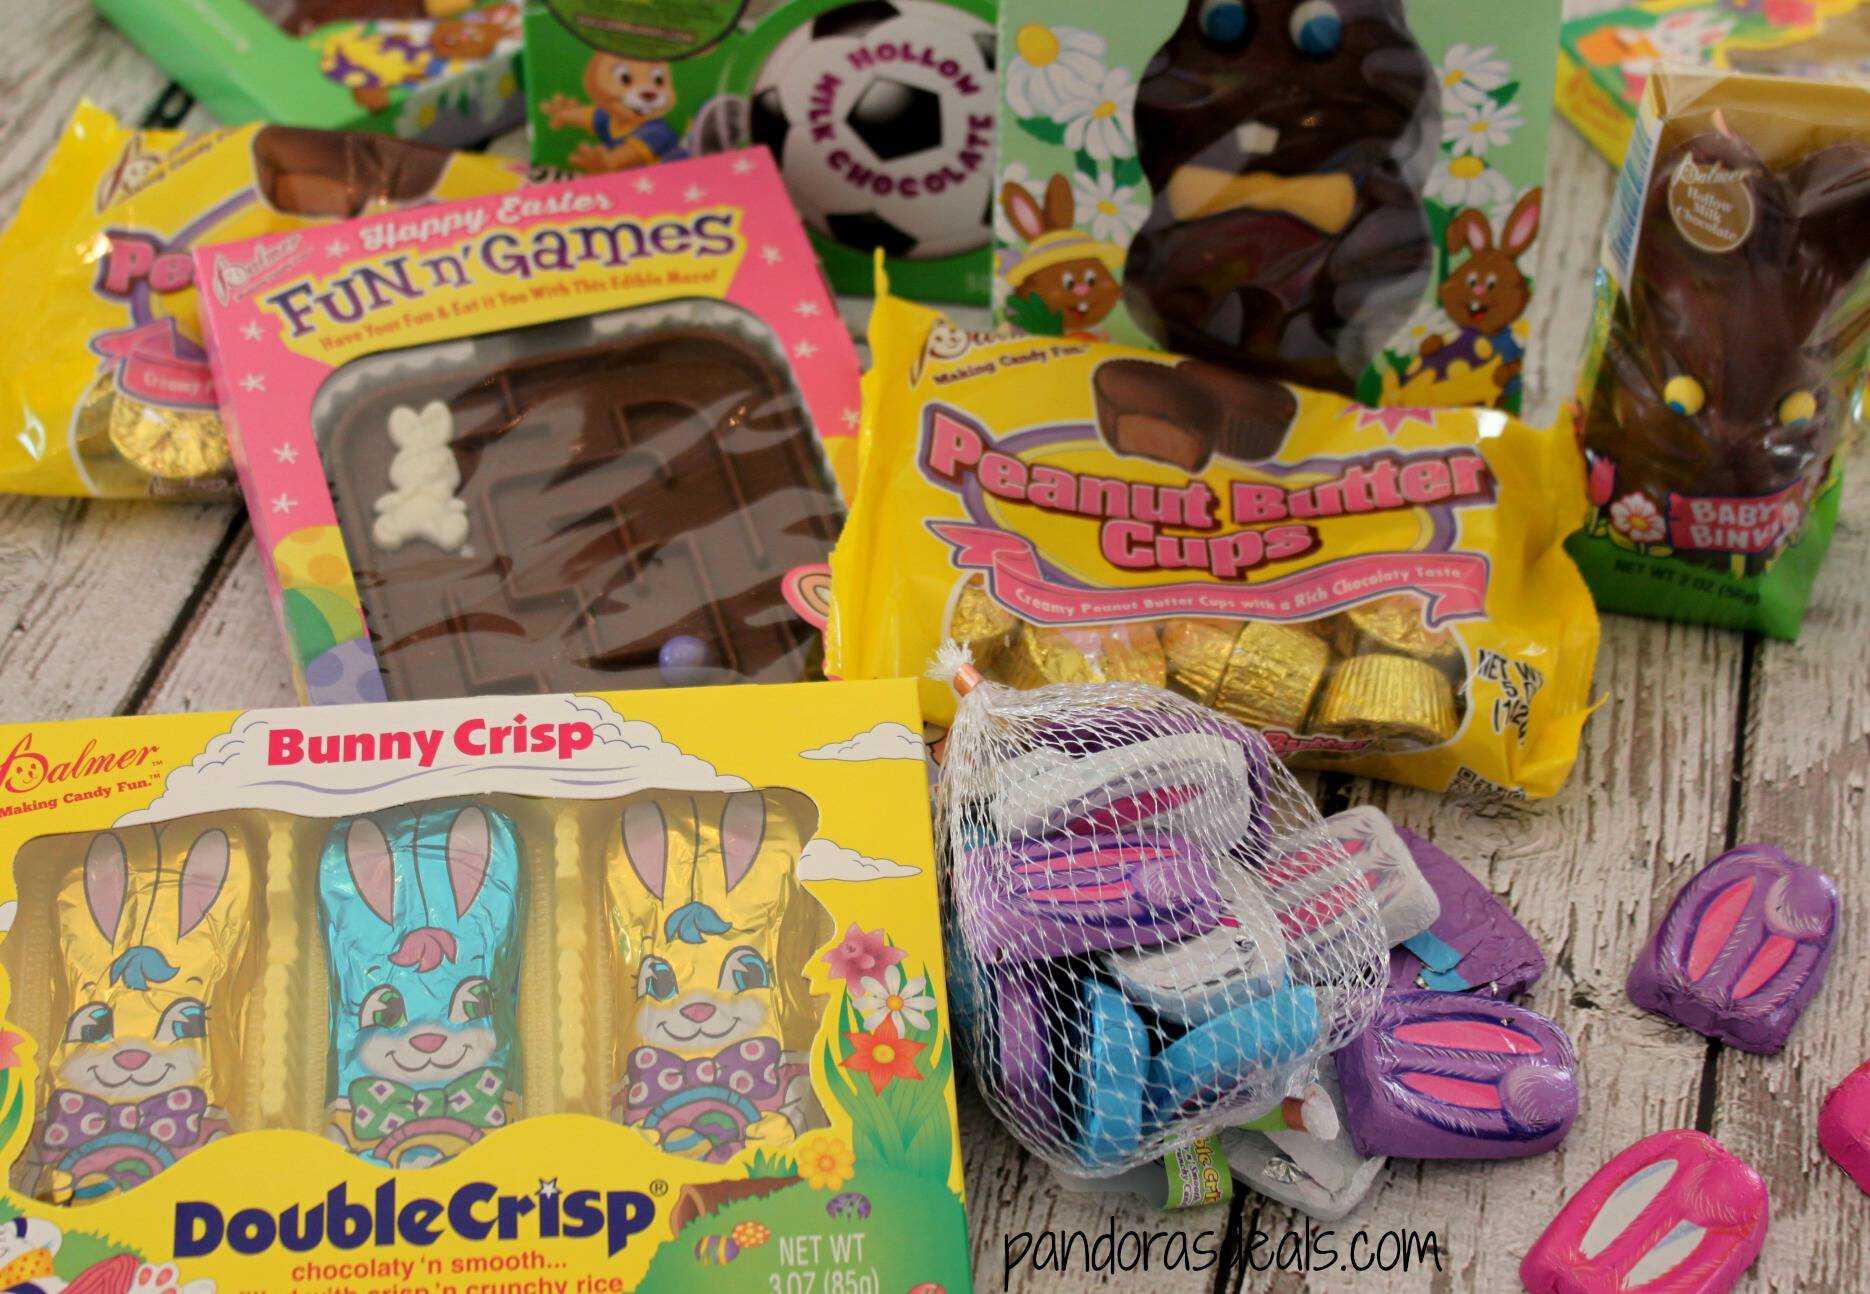 Palmer Easter Candies